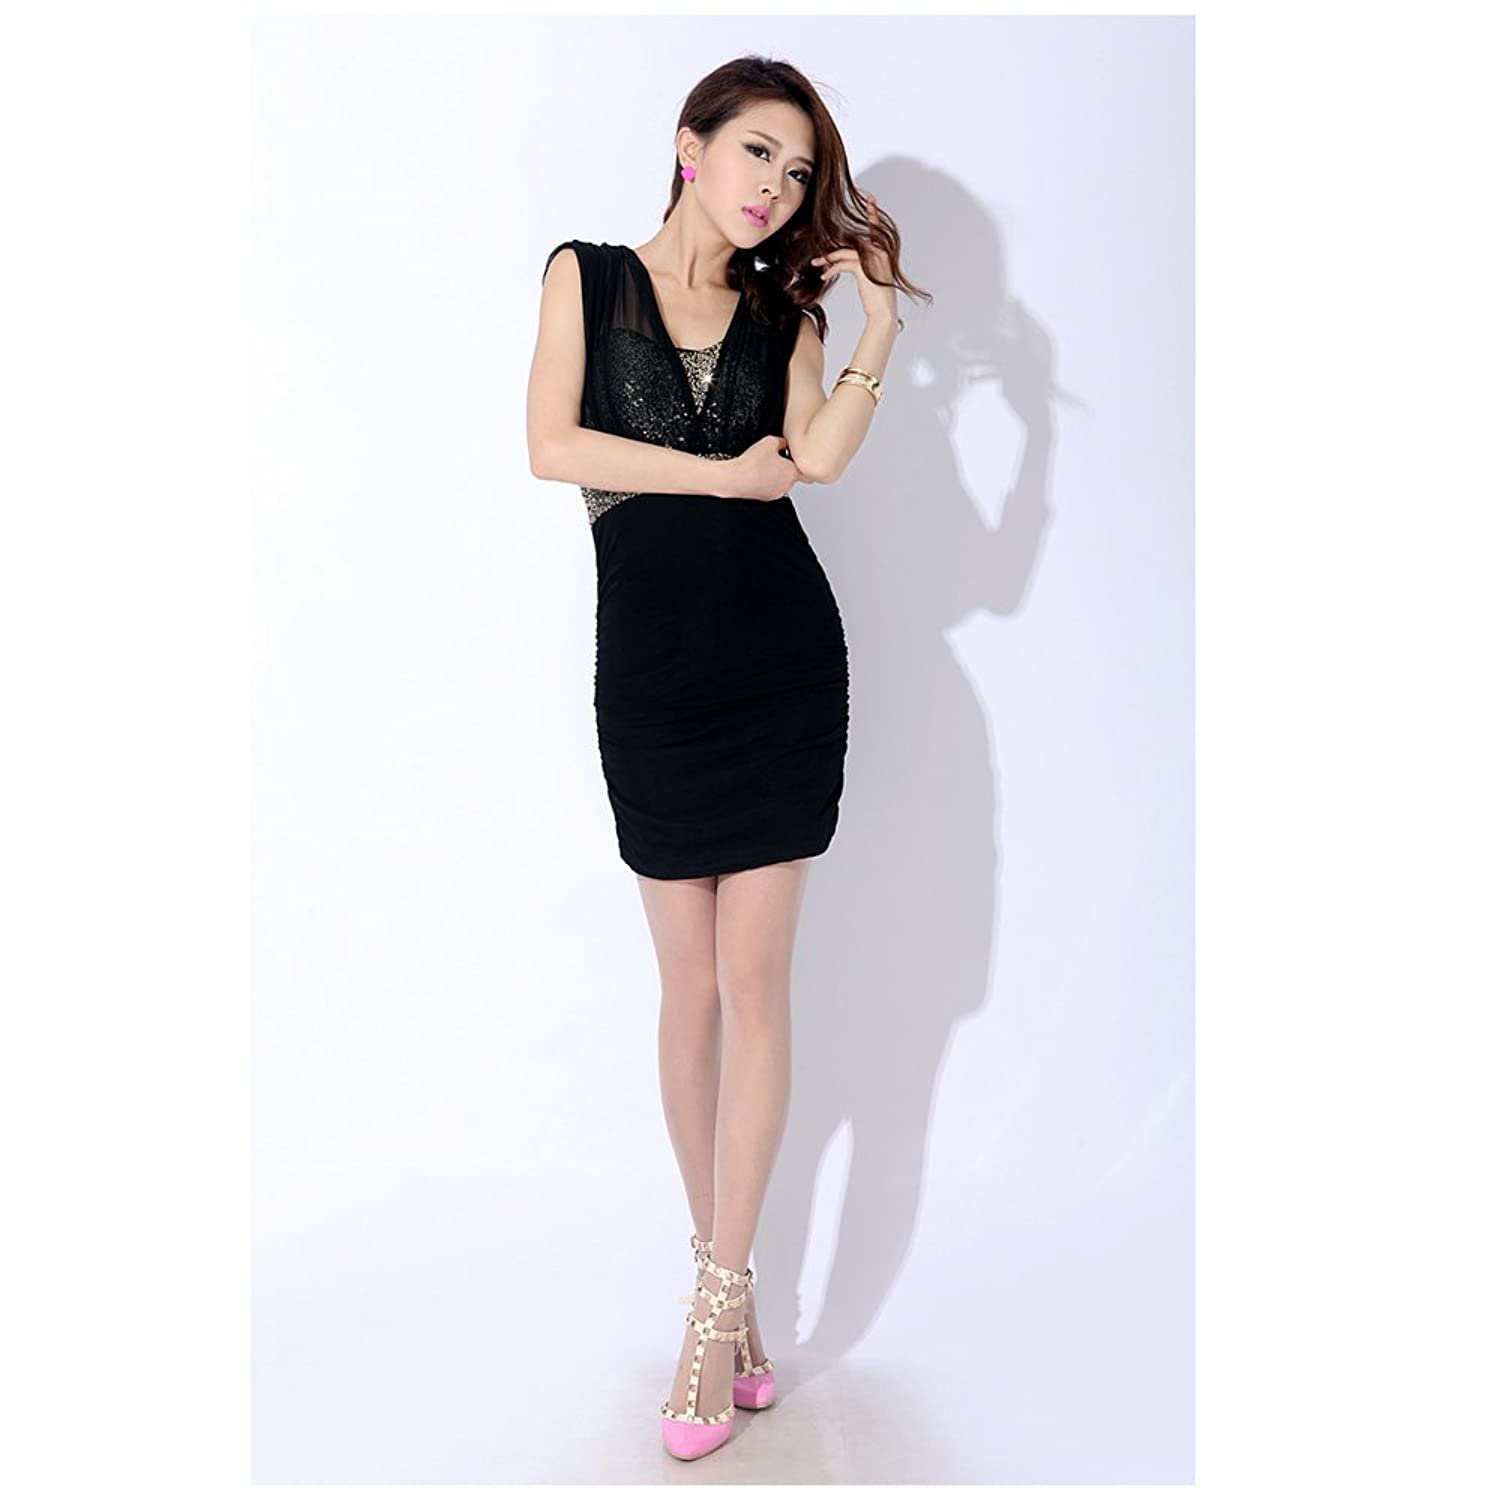 New Sexy Ladies Sequin Mesh See-through Mesh Sleeveless Party Dress Cocktail Dress